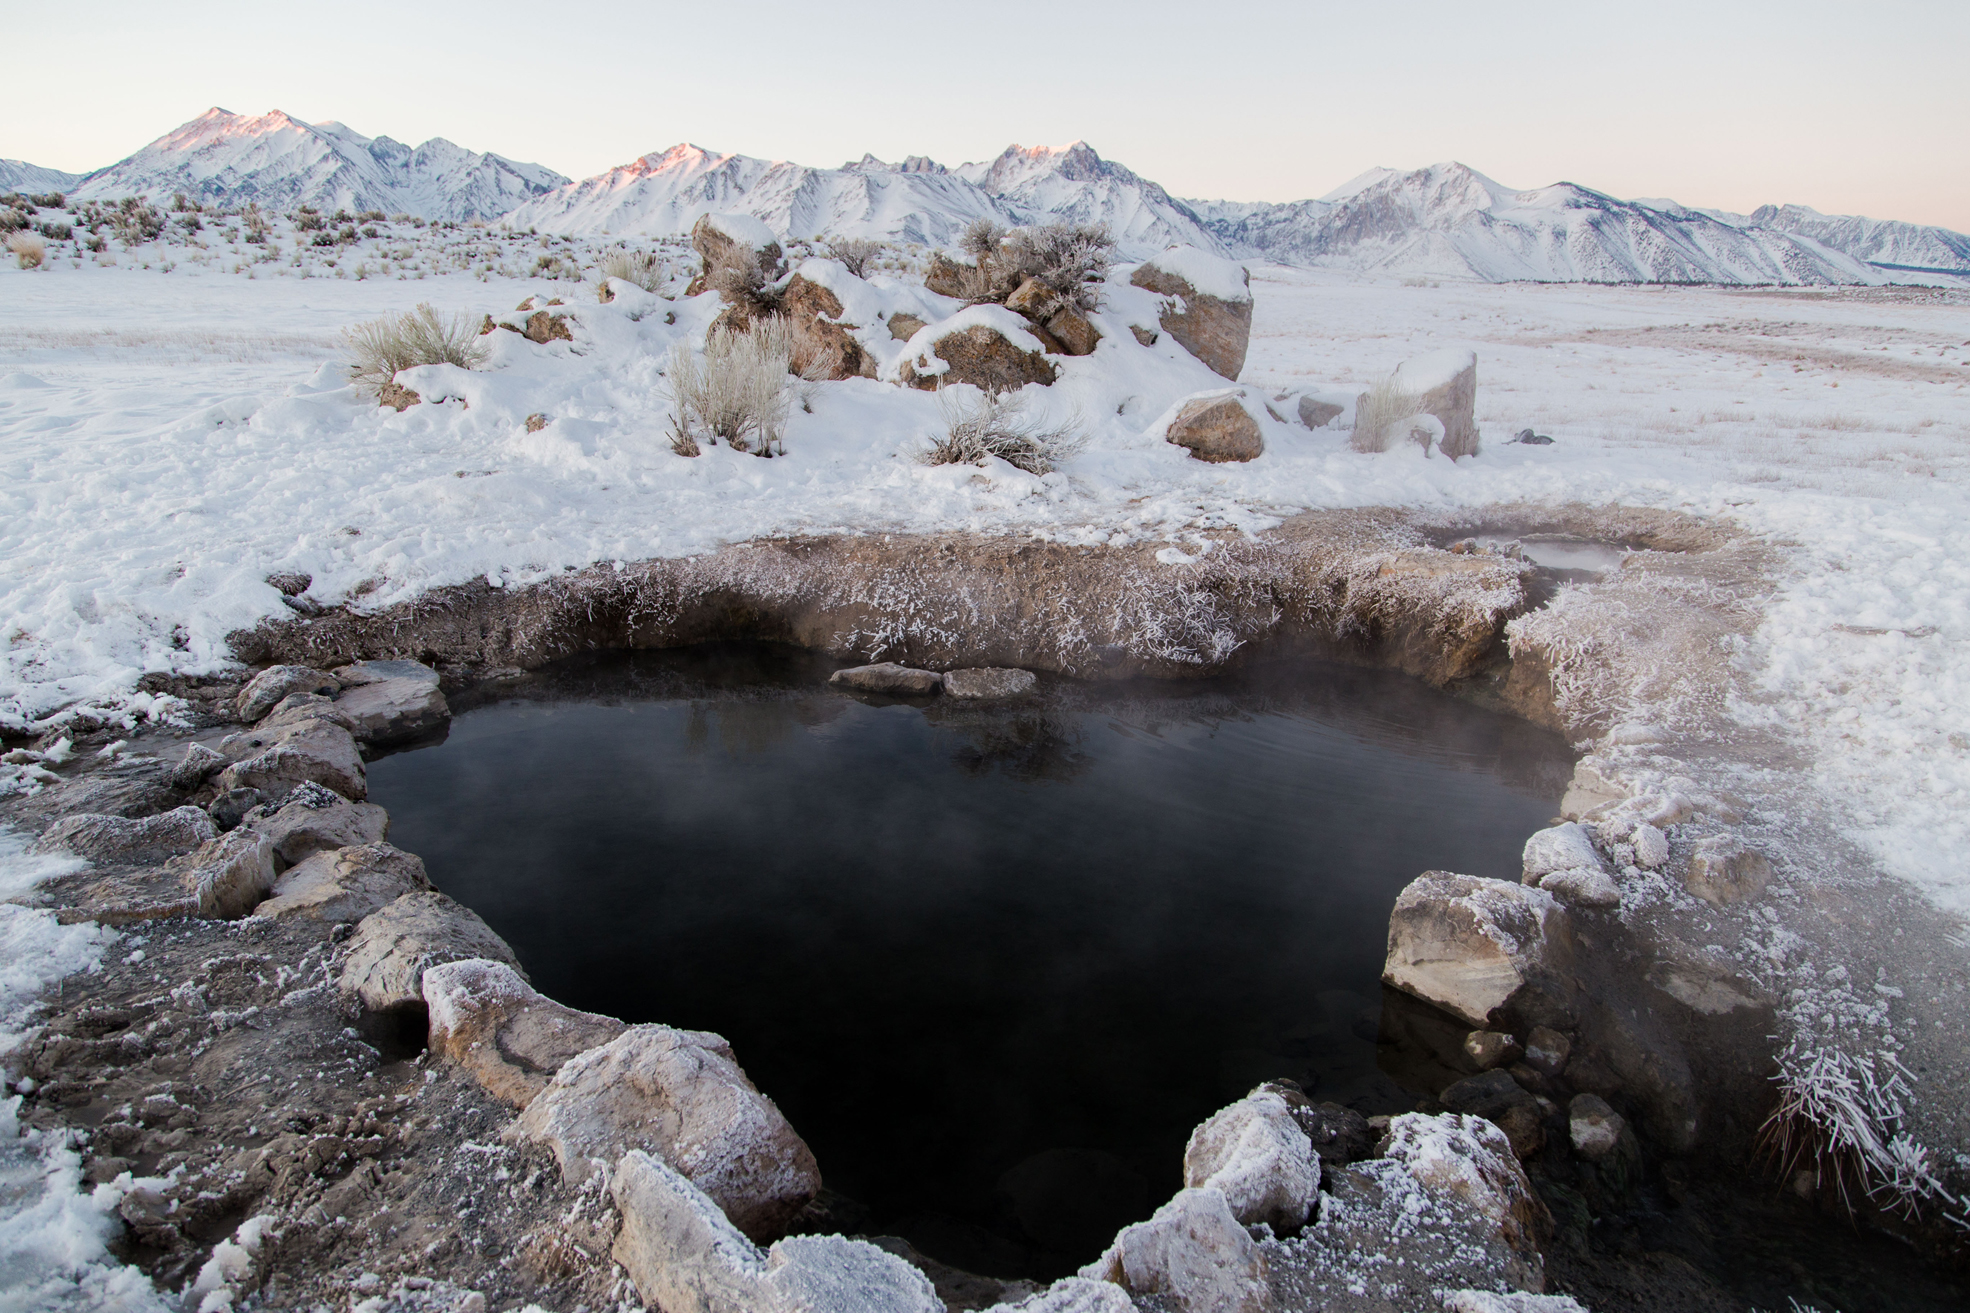 The Secret Hot Springs of Mammoth